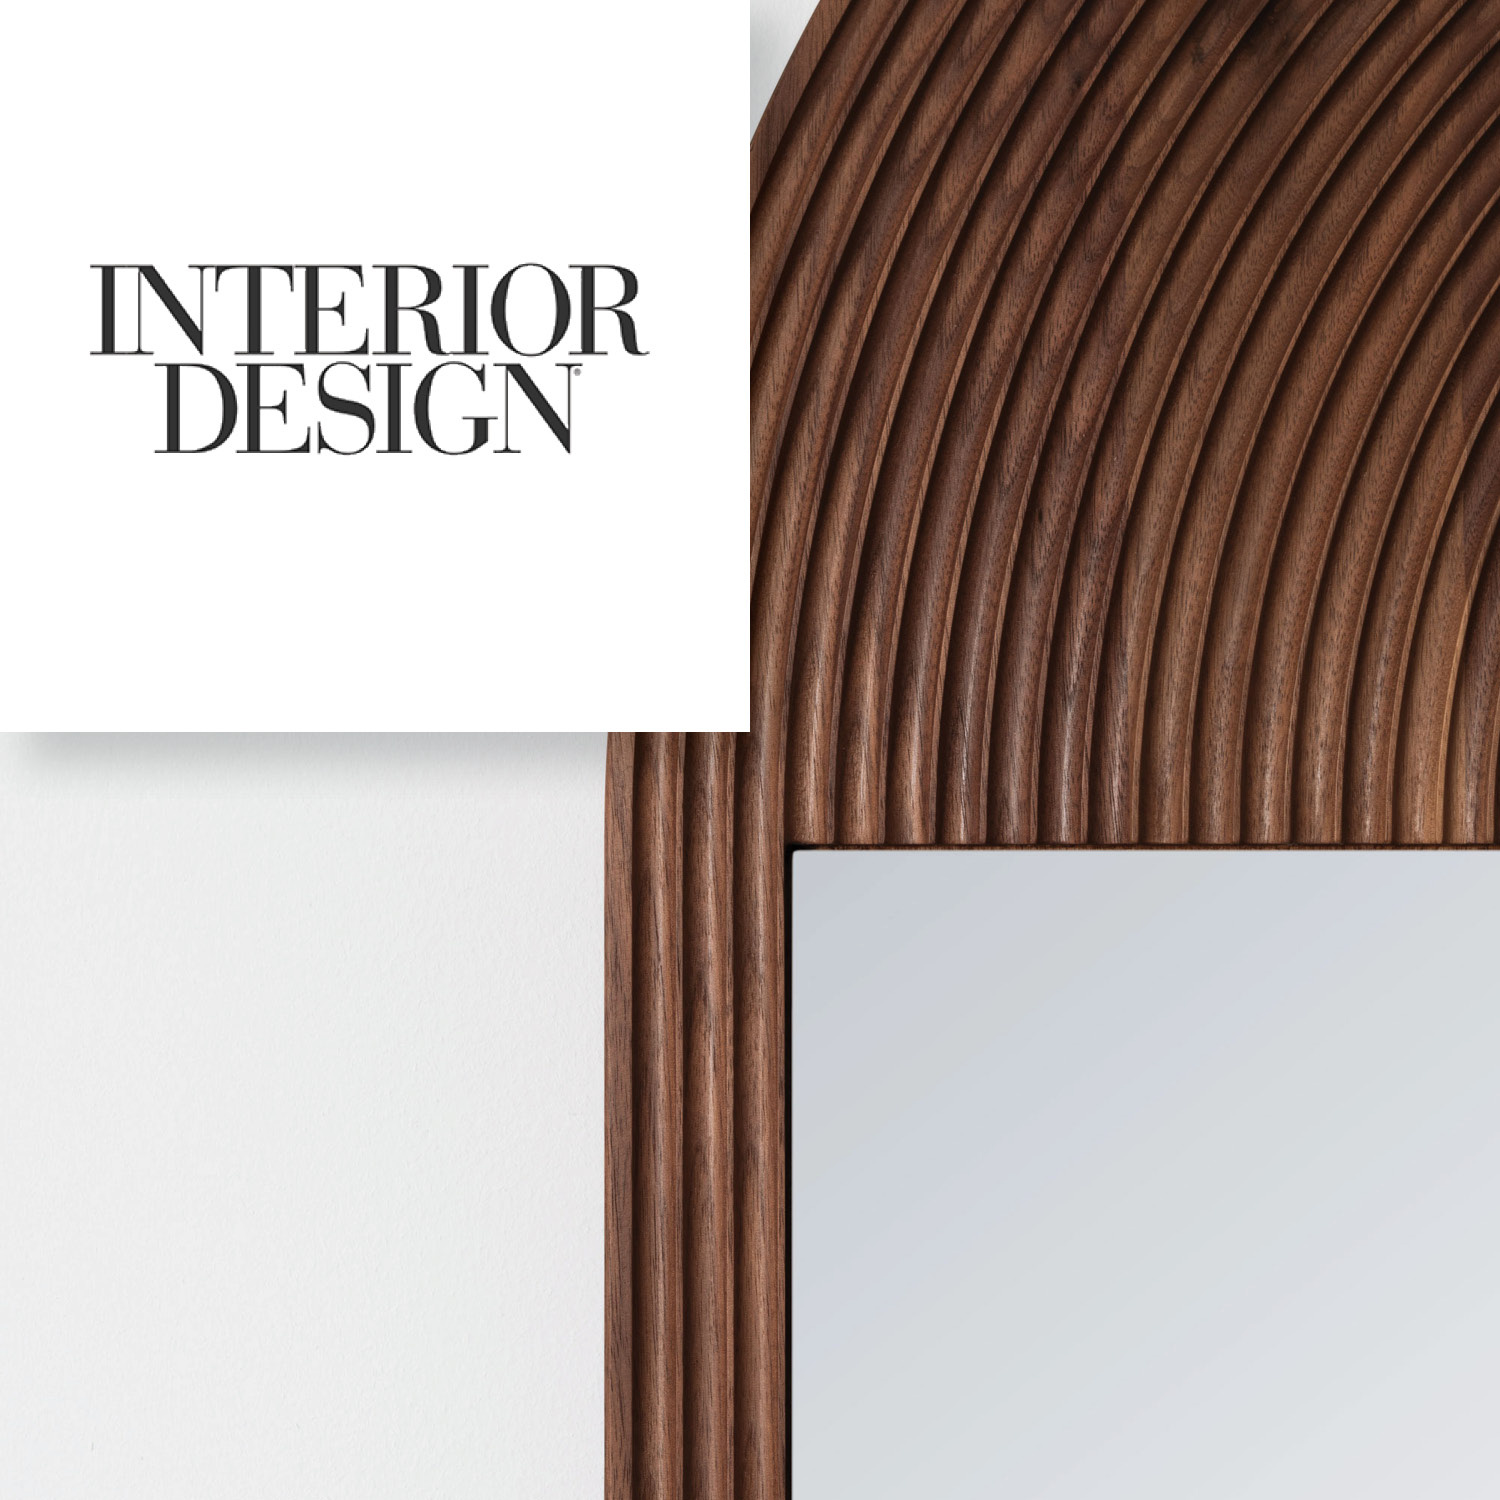 Interior Design, October 2018